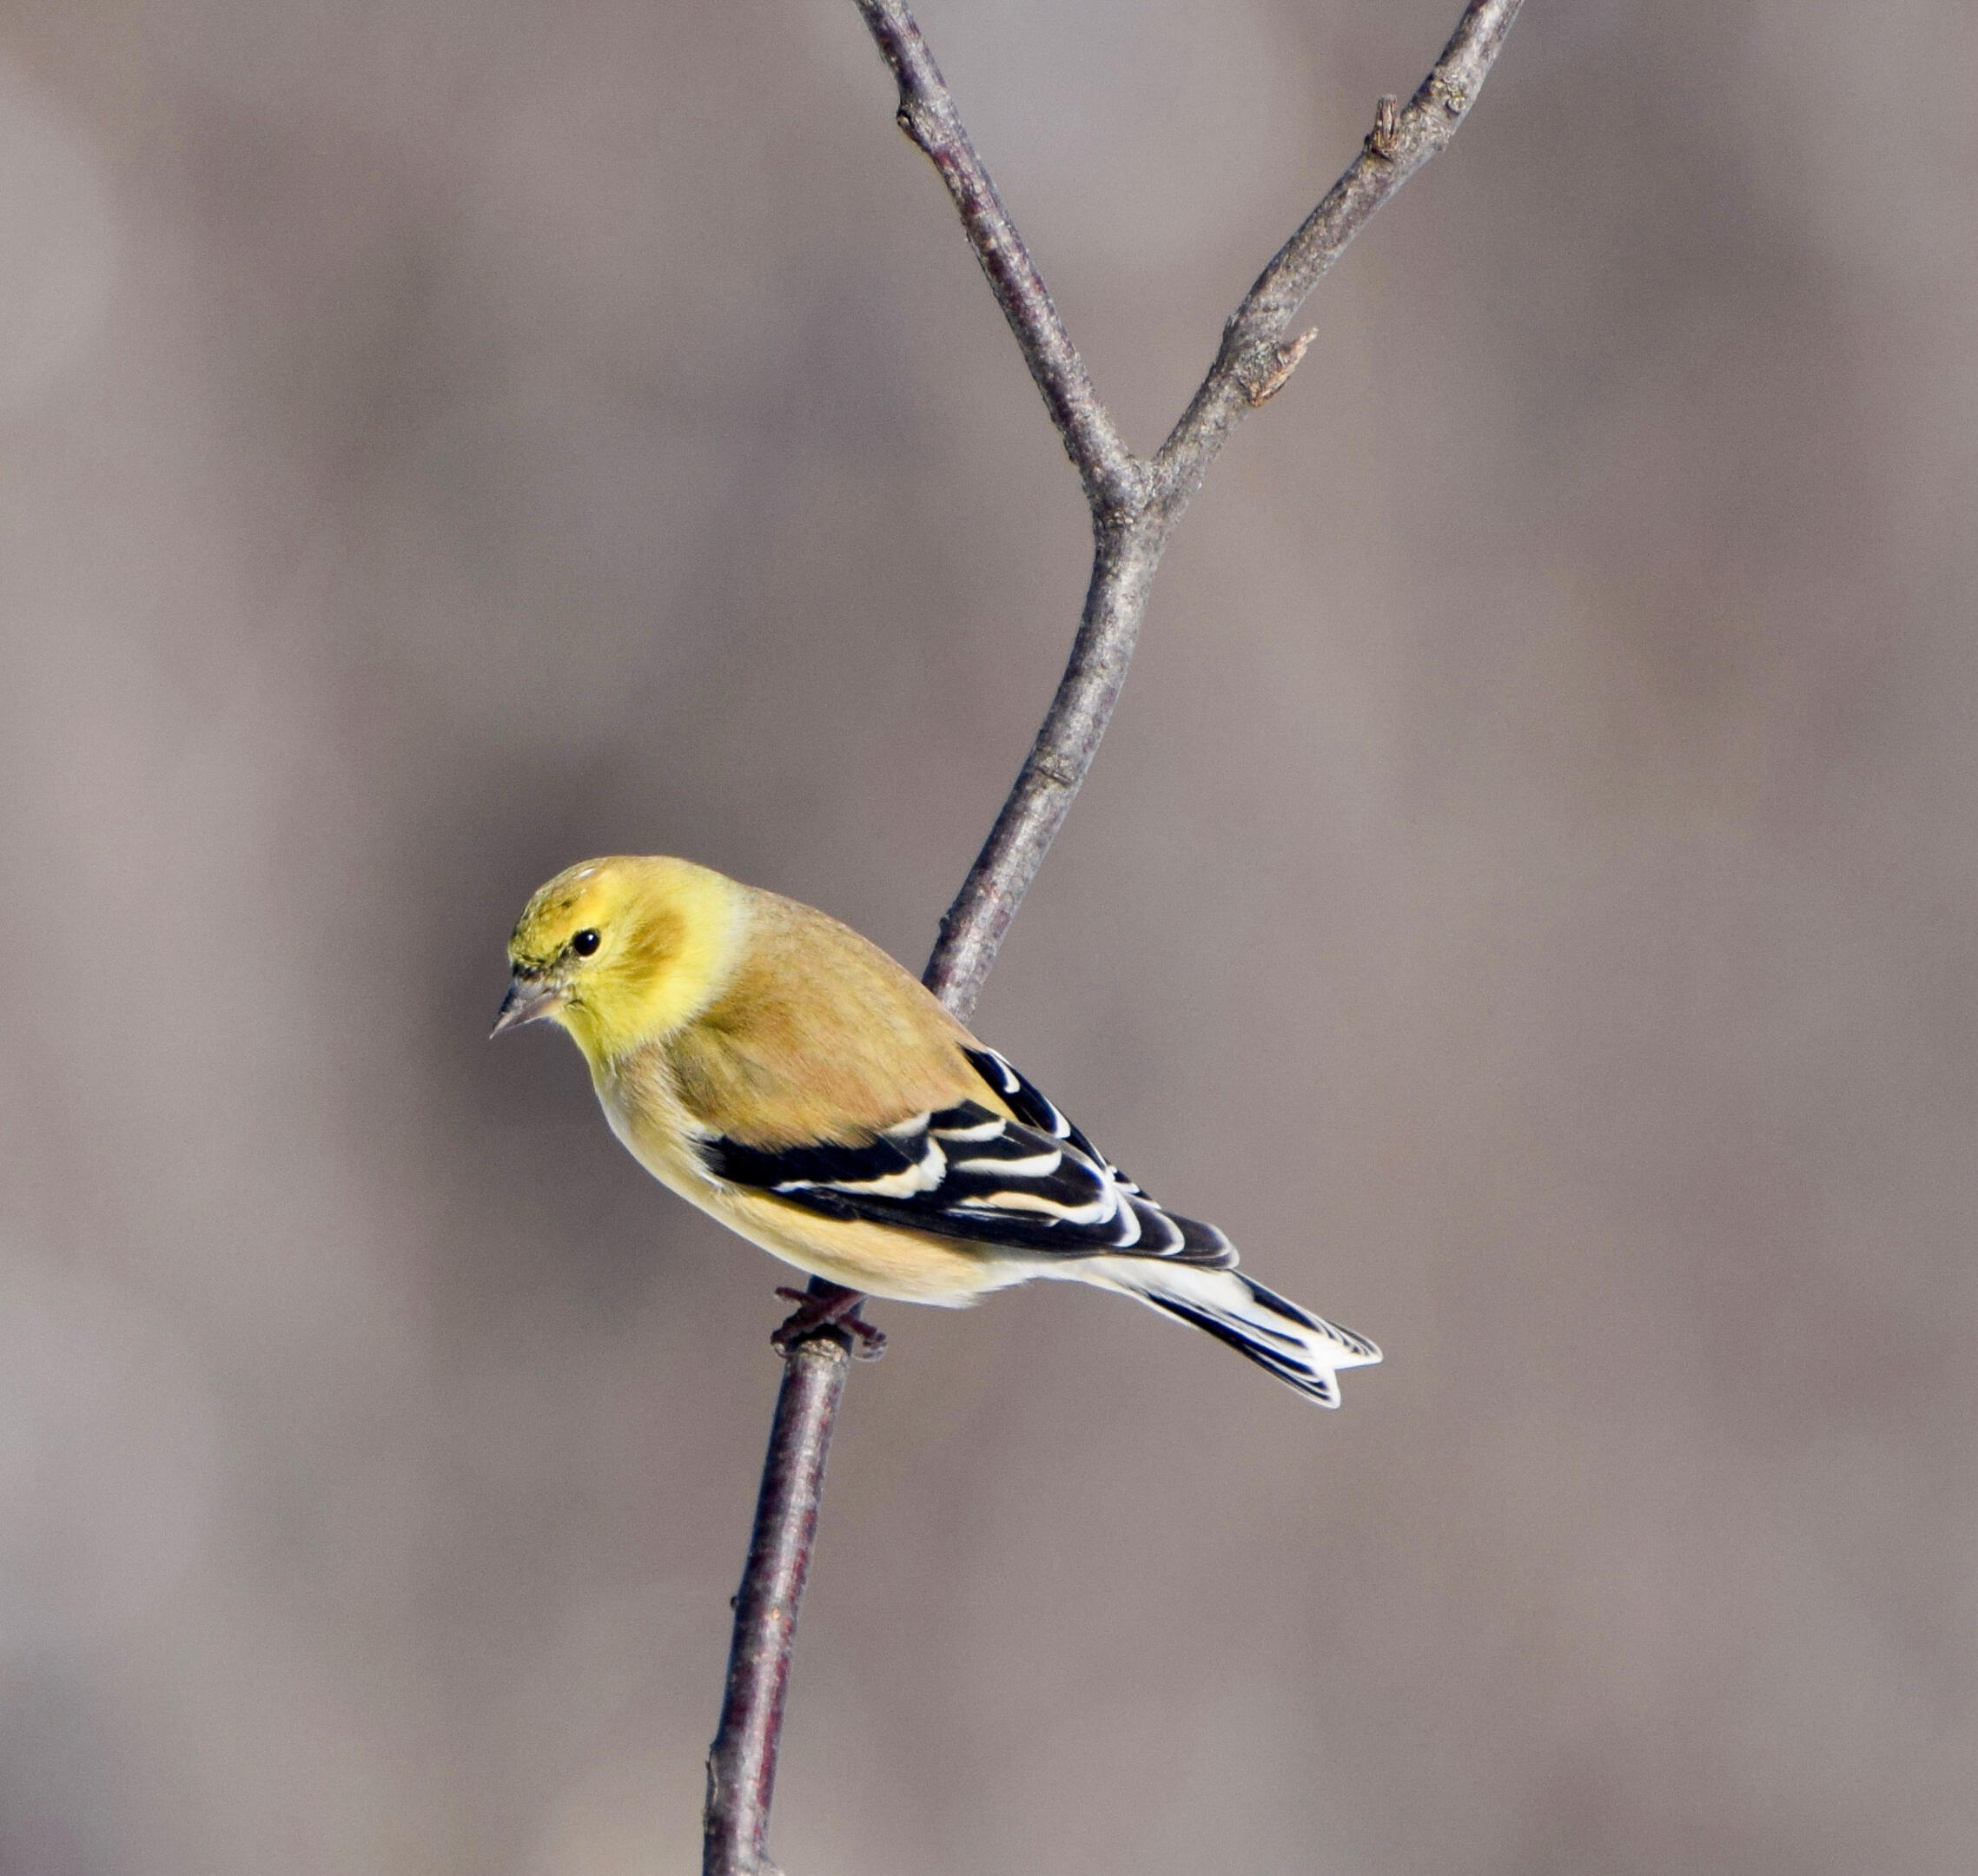 American Goldfinch   Audubon Field Guide on evening grosbeak, finches migration, mourning dove, cardinal migration, northern mockingbird, blue jay, common redpoll, house finch, pine grosbeak, black-capped chickadee, northern flicker, american robin, house sparrow, northern cardinal, indigo bunting, gold finch migration, european goldfinch, purple finch, pine siskin, purple finch migration, house finch migration, yellow canary migration, tufted titmouse, lesser goldfinch, red-winged blackbird,